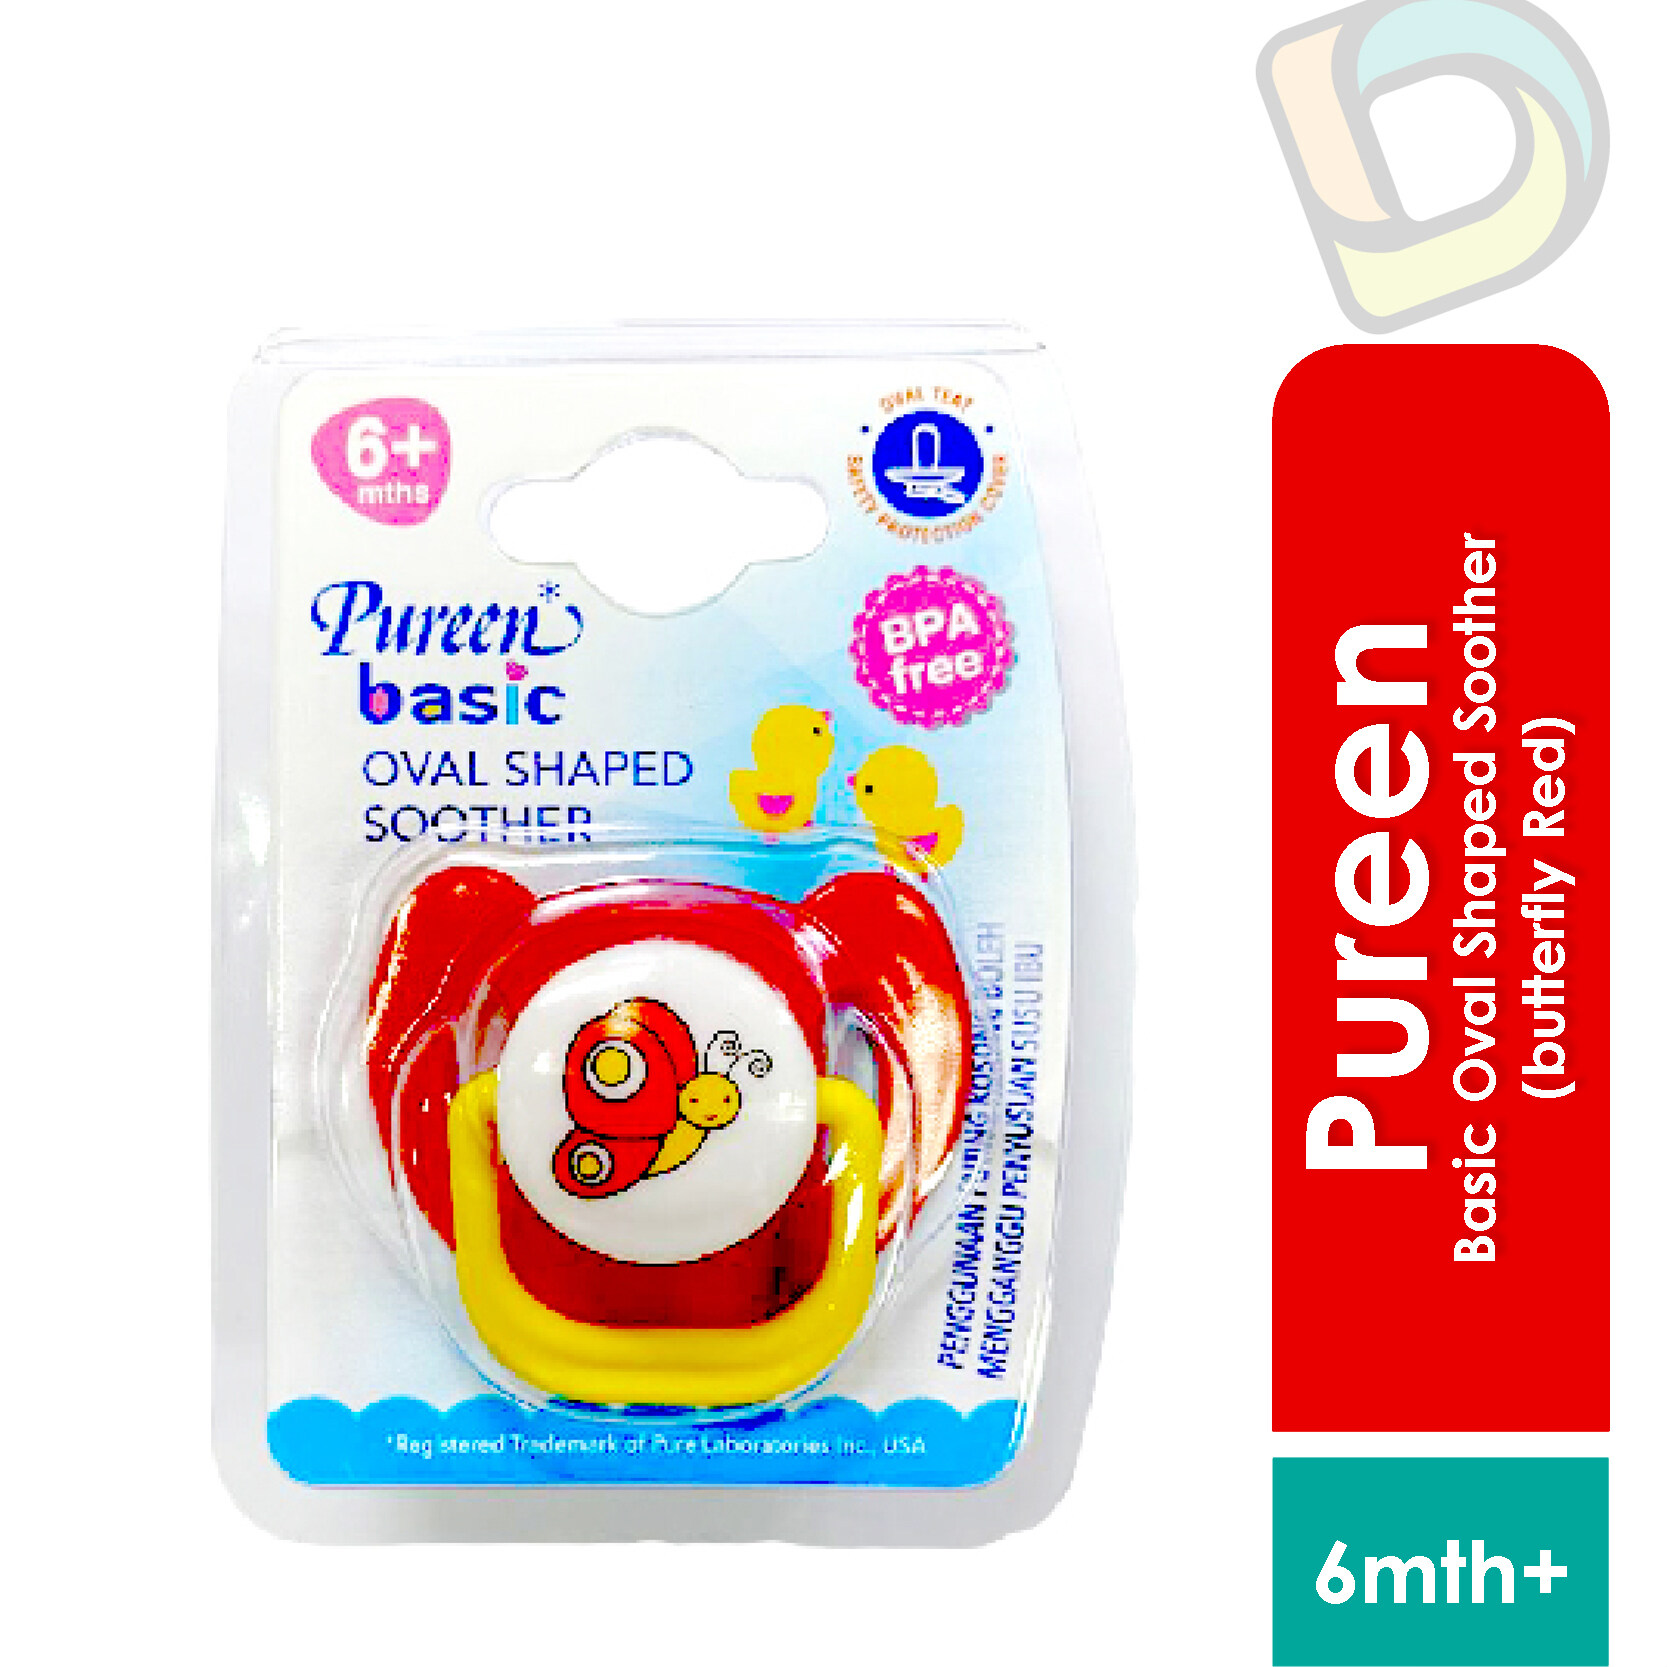 Pureen Basic Oval Shaped Soother 6mth+